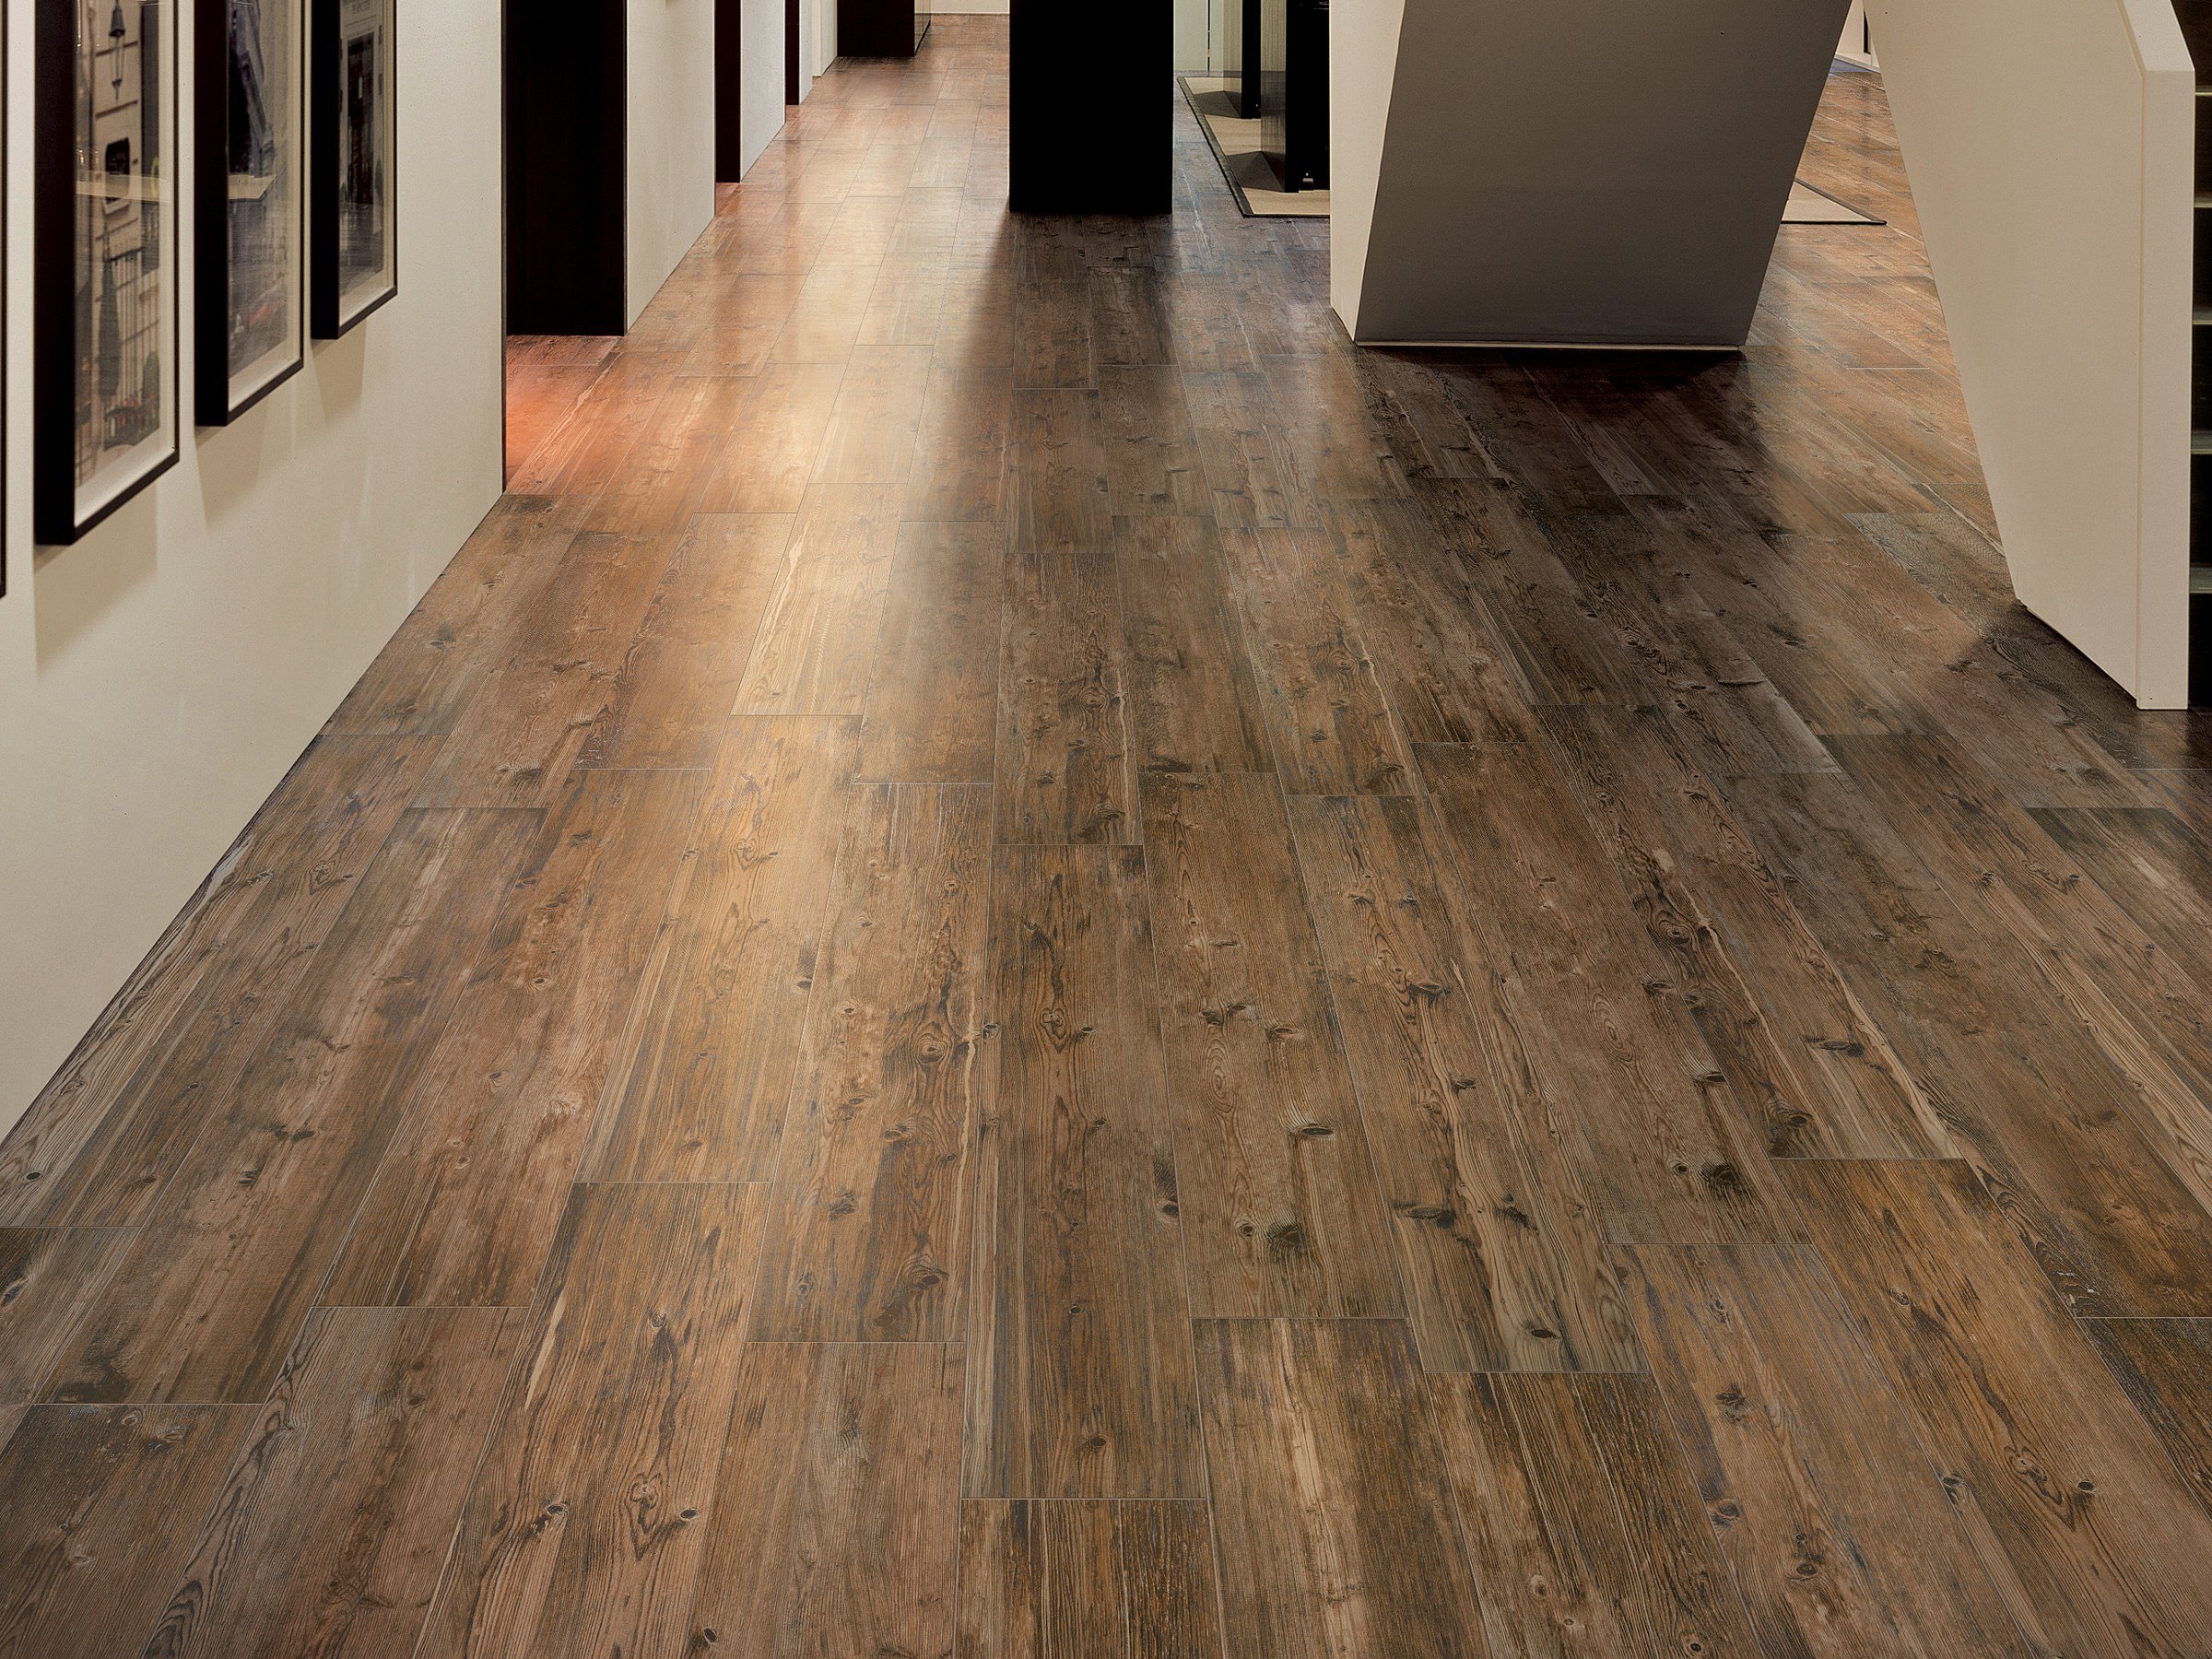 Porcelain Floor Tiles Porcelain Stoneware Flooring With Wood Effect Larix By